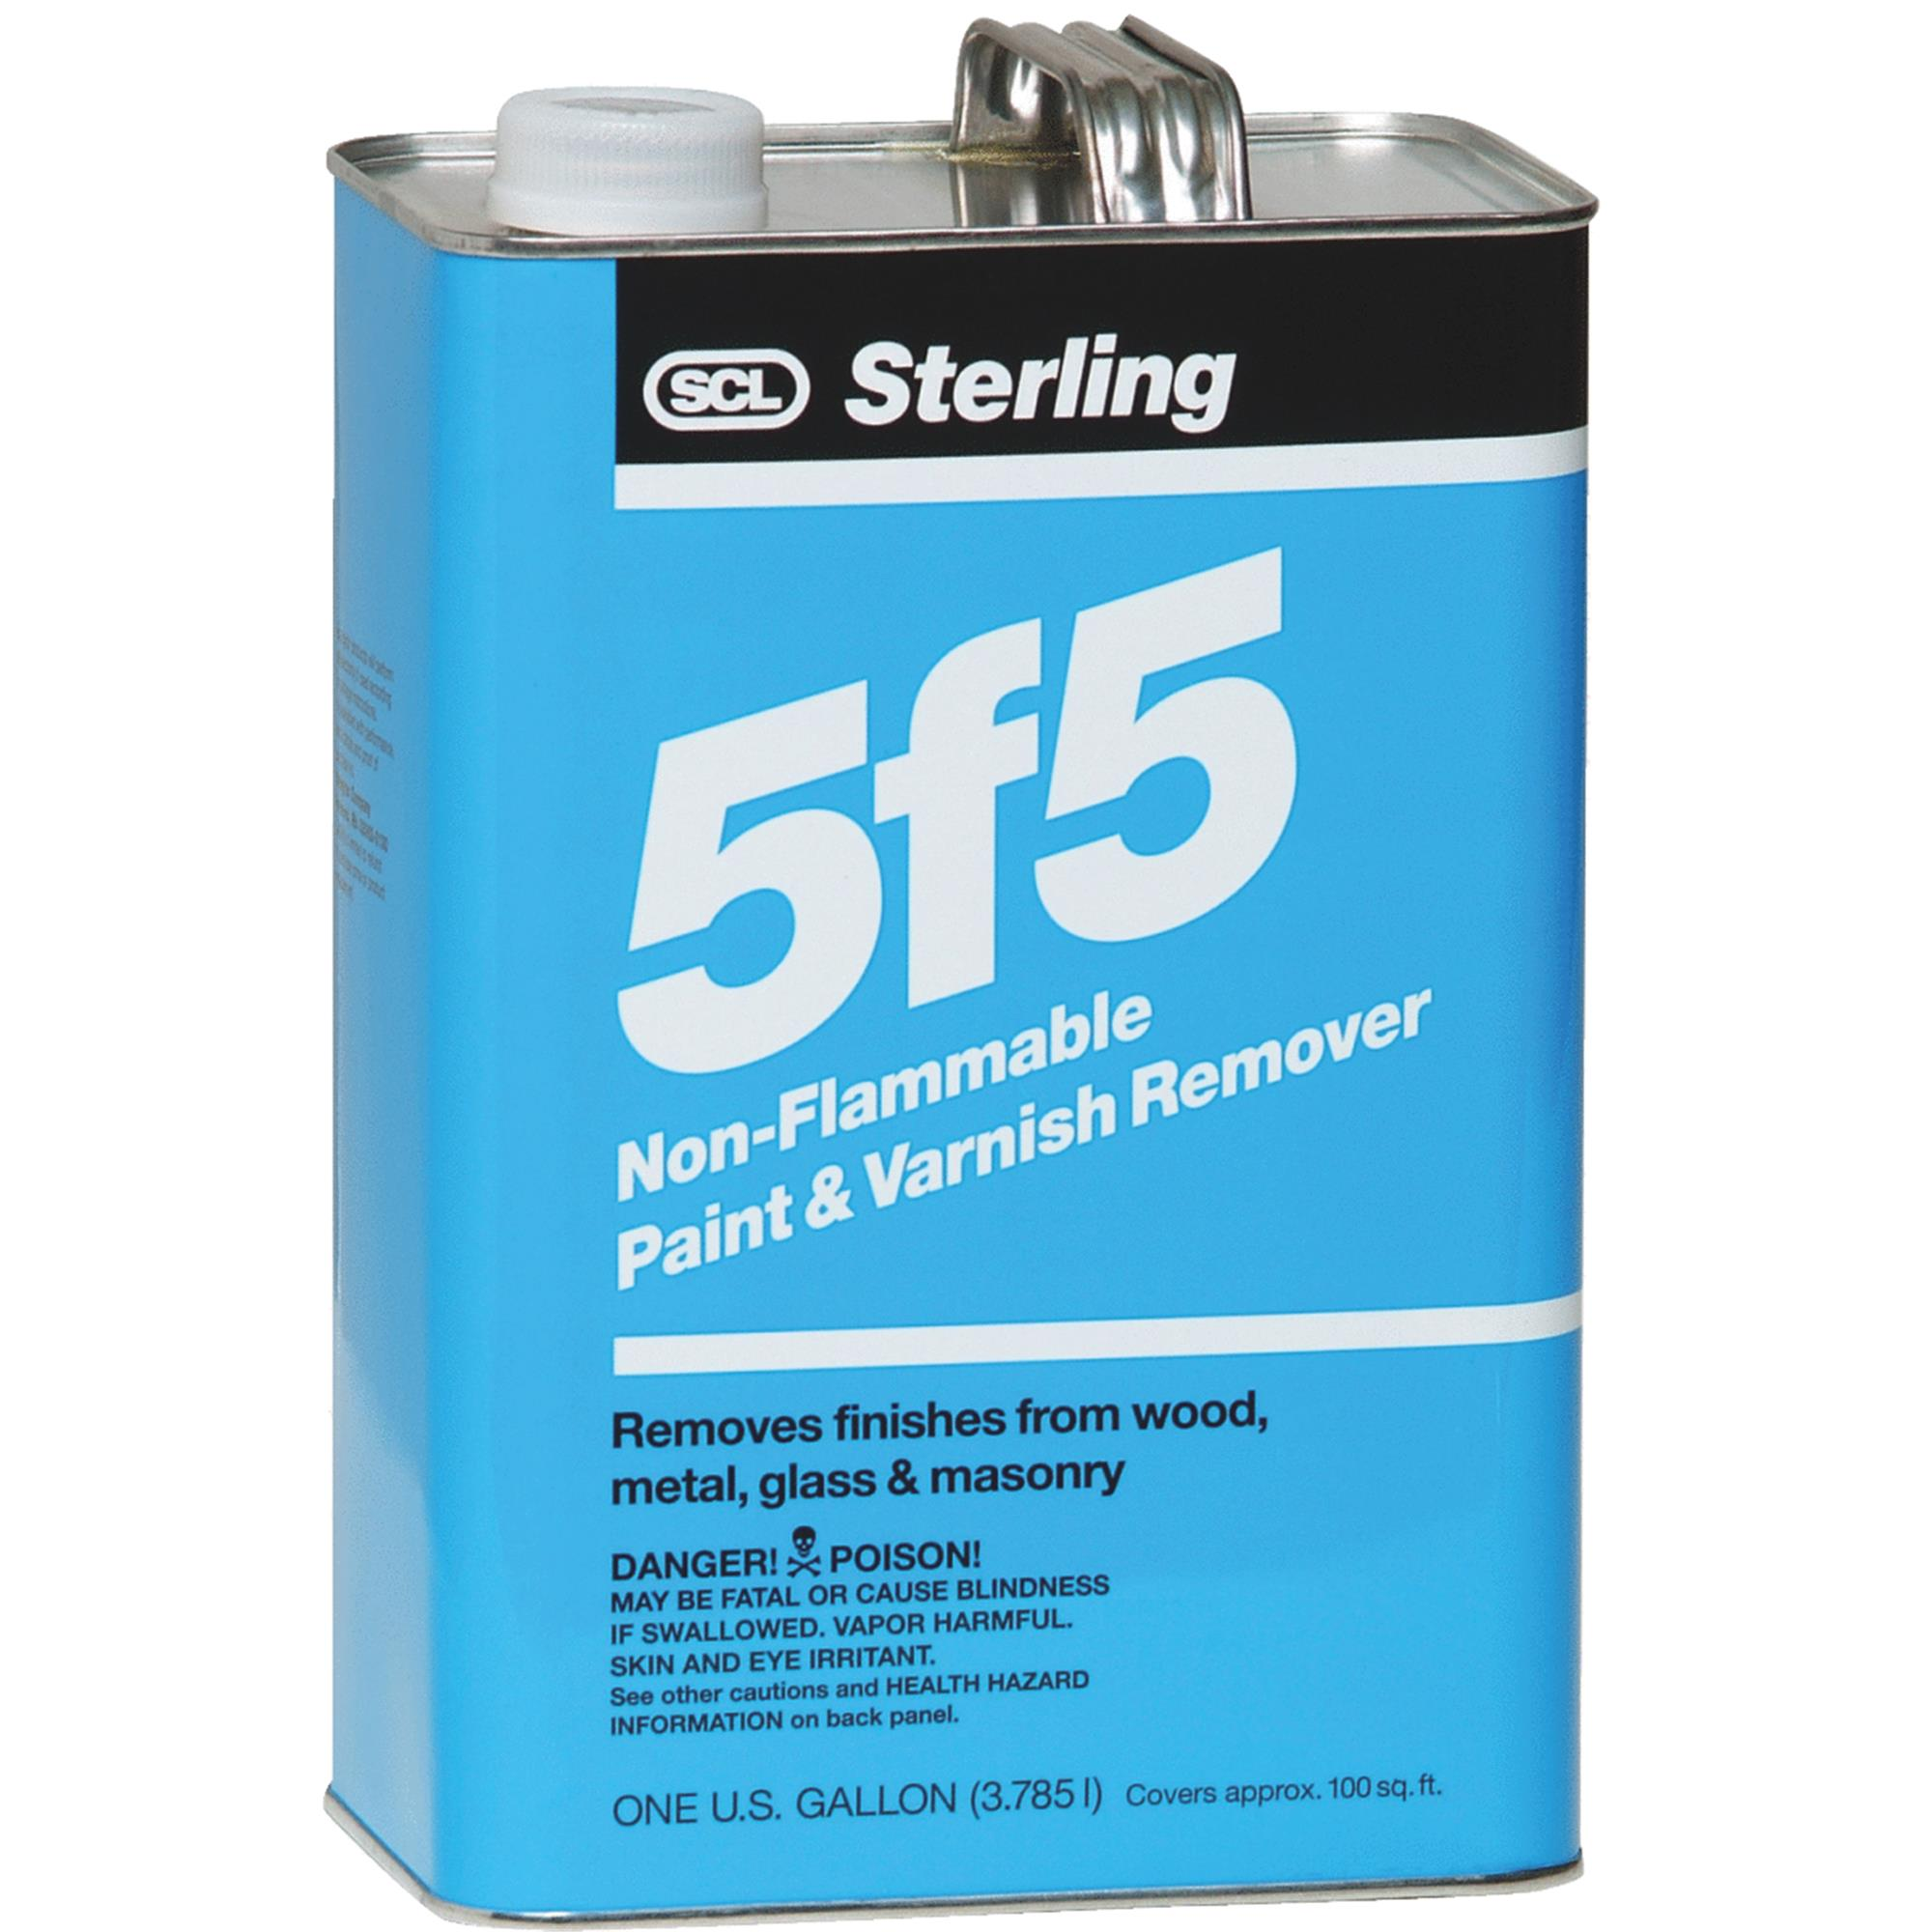 Sterling 5f5 Paint & Varnish Stripper